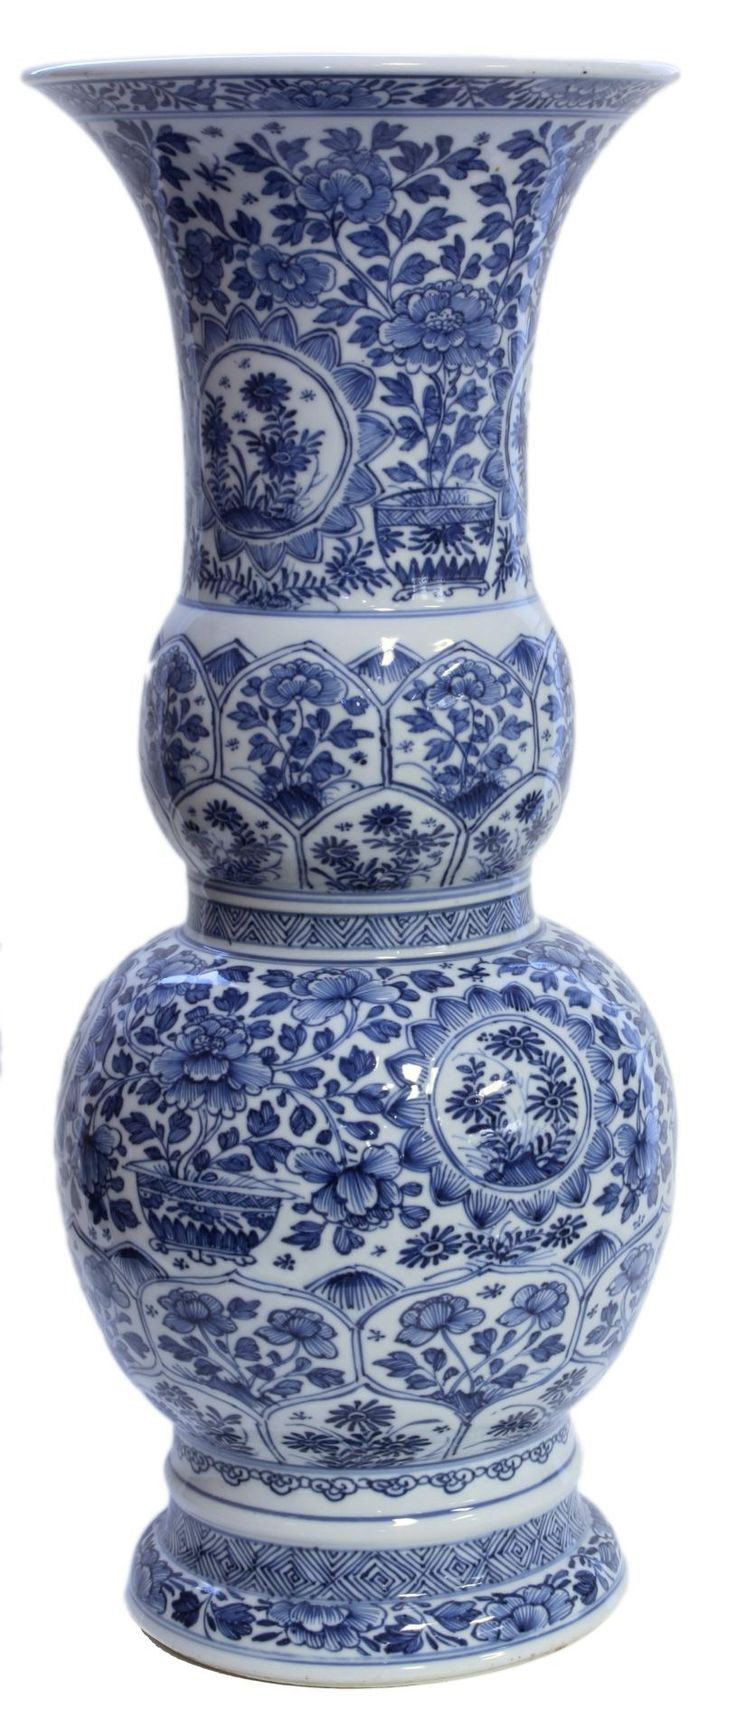 blue and white porcelain vases wholesale of 4293 best blue is my world images on pinterest cobalt blue blue pertaining to chinese hand painted blue and white vase vase depicting flowers throughout with stylized lotus blossom leaf designs